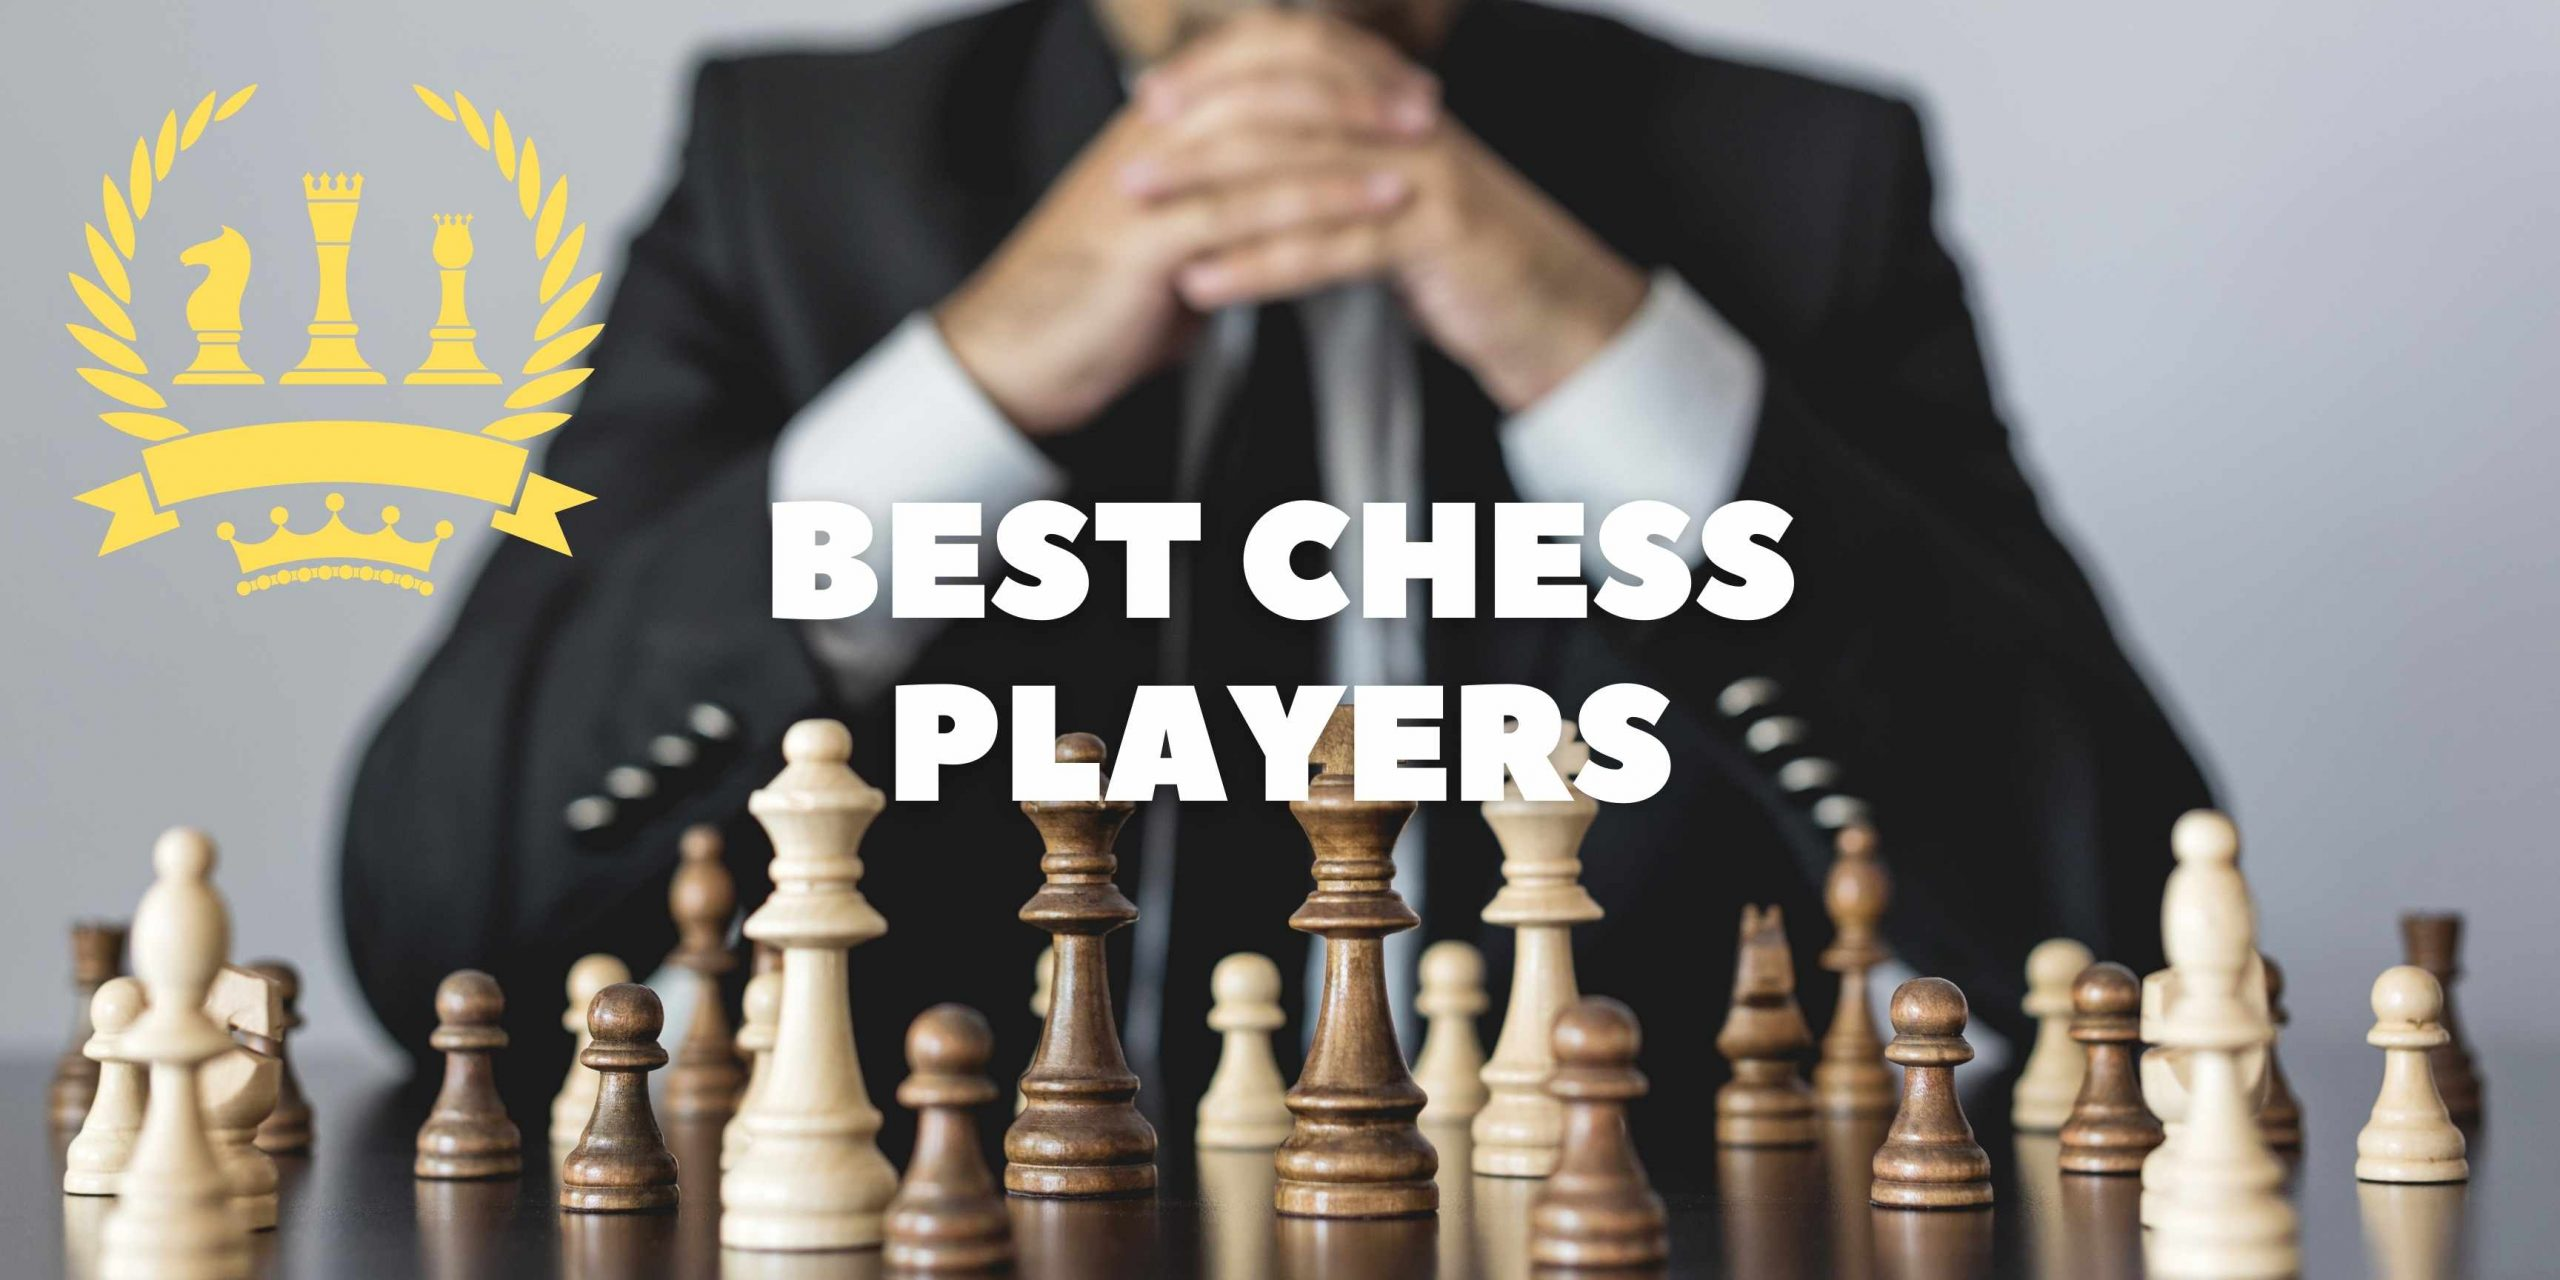 About the best chess players post thumbnail image